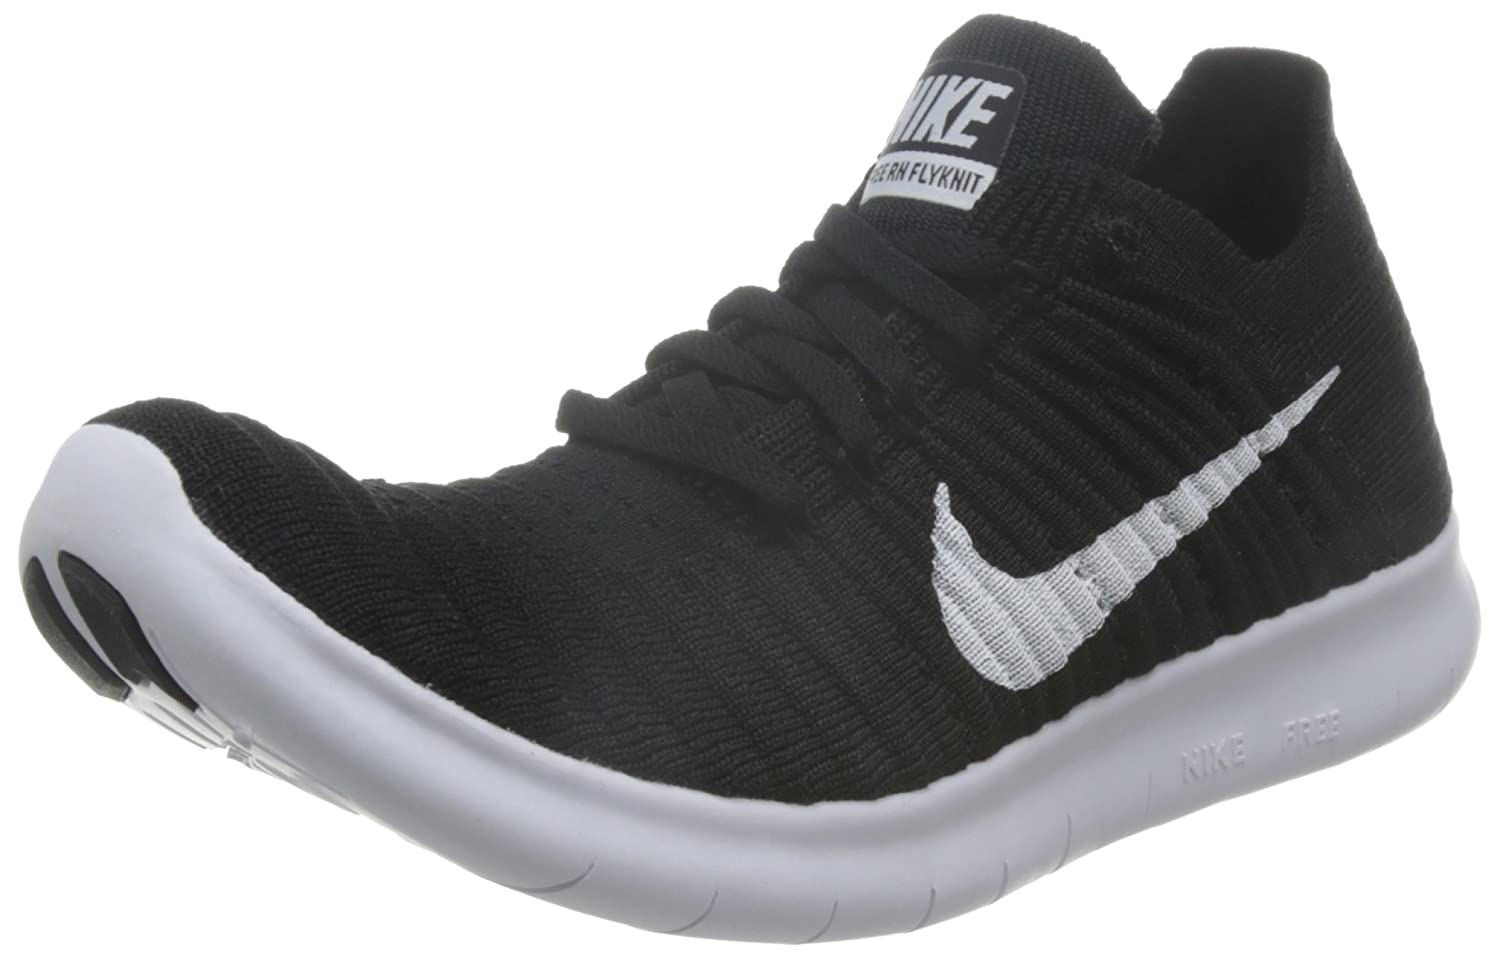 af5957c9bef6 Amazon.com  Nike Free RN Flyknit Womens Black White Running Sneakers   Sports   Outdoors